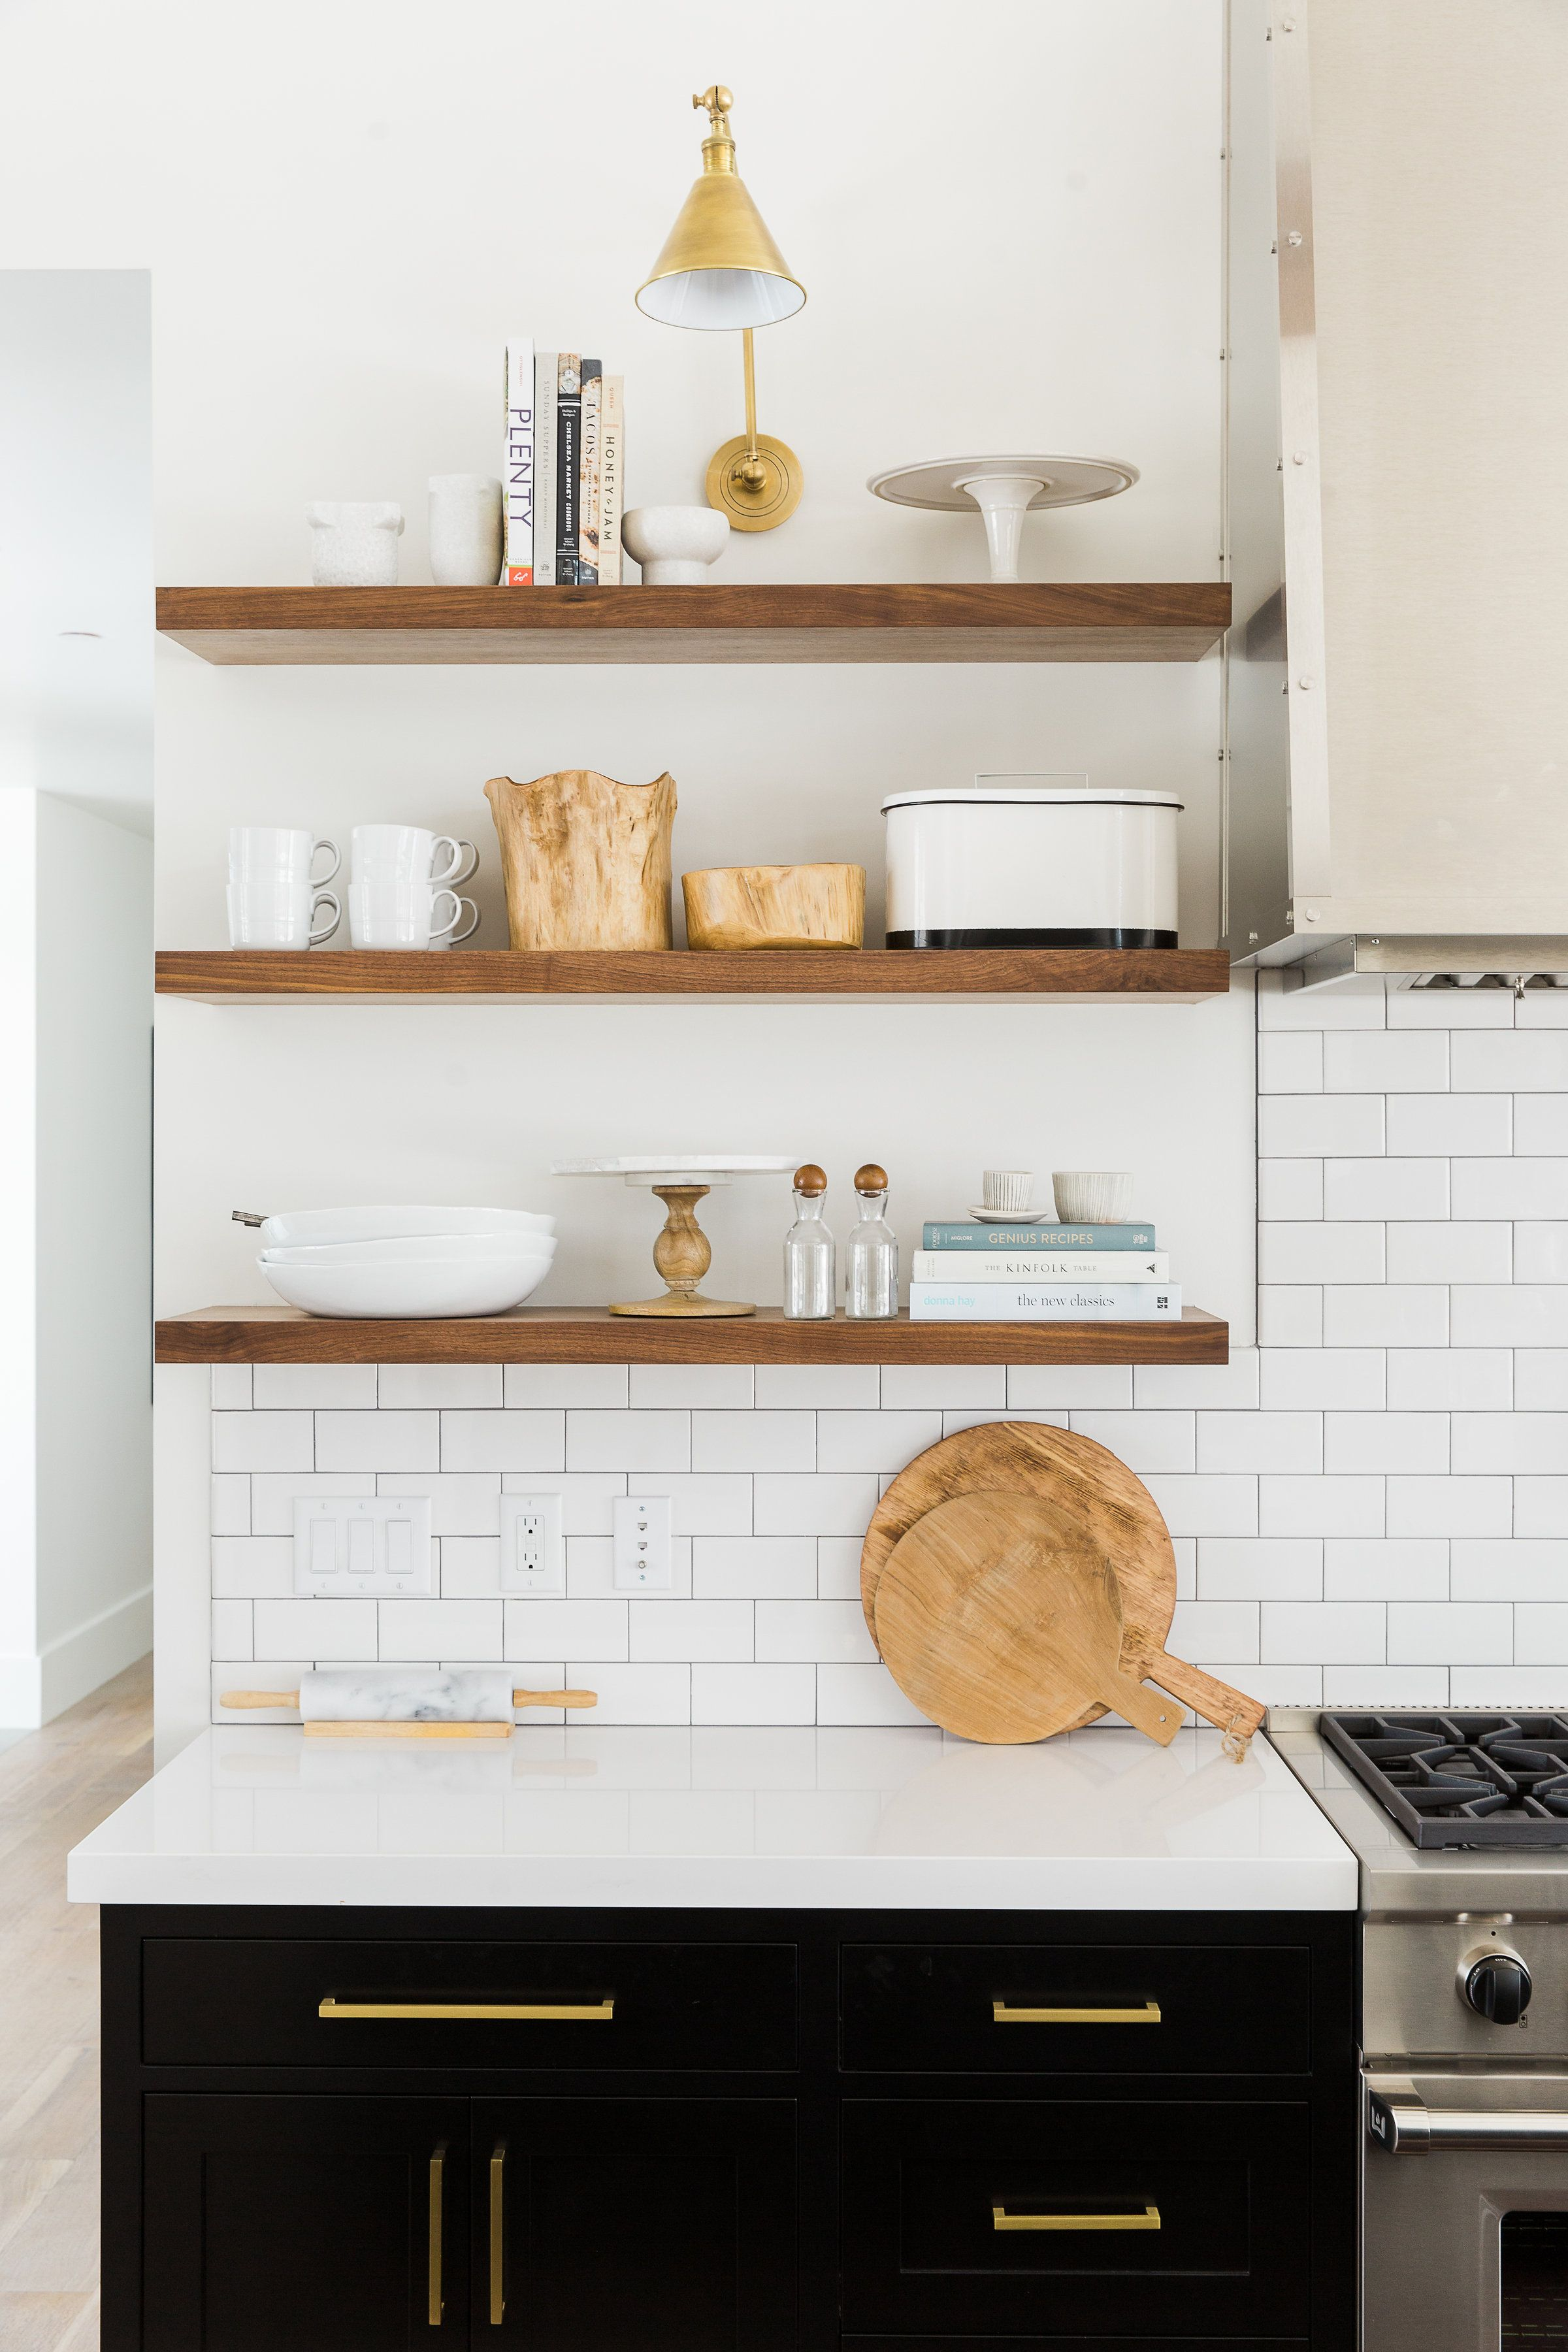 stylist and luxury supply lines for kitchen sink. Kitchen Styling inspiration  Love the open shelves decor Modern Mountain Home Tour Great Room Dining Open